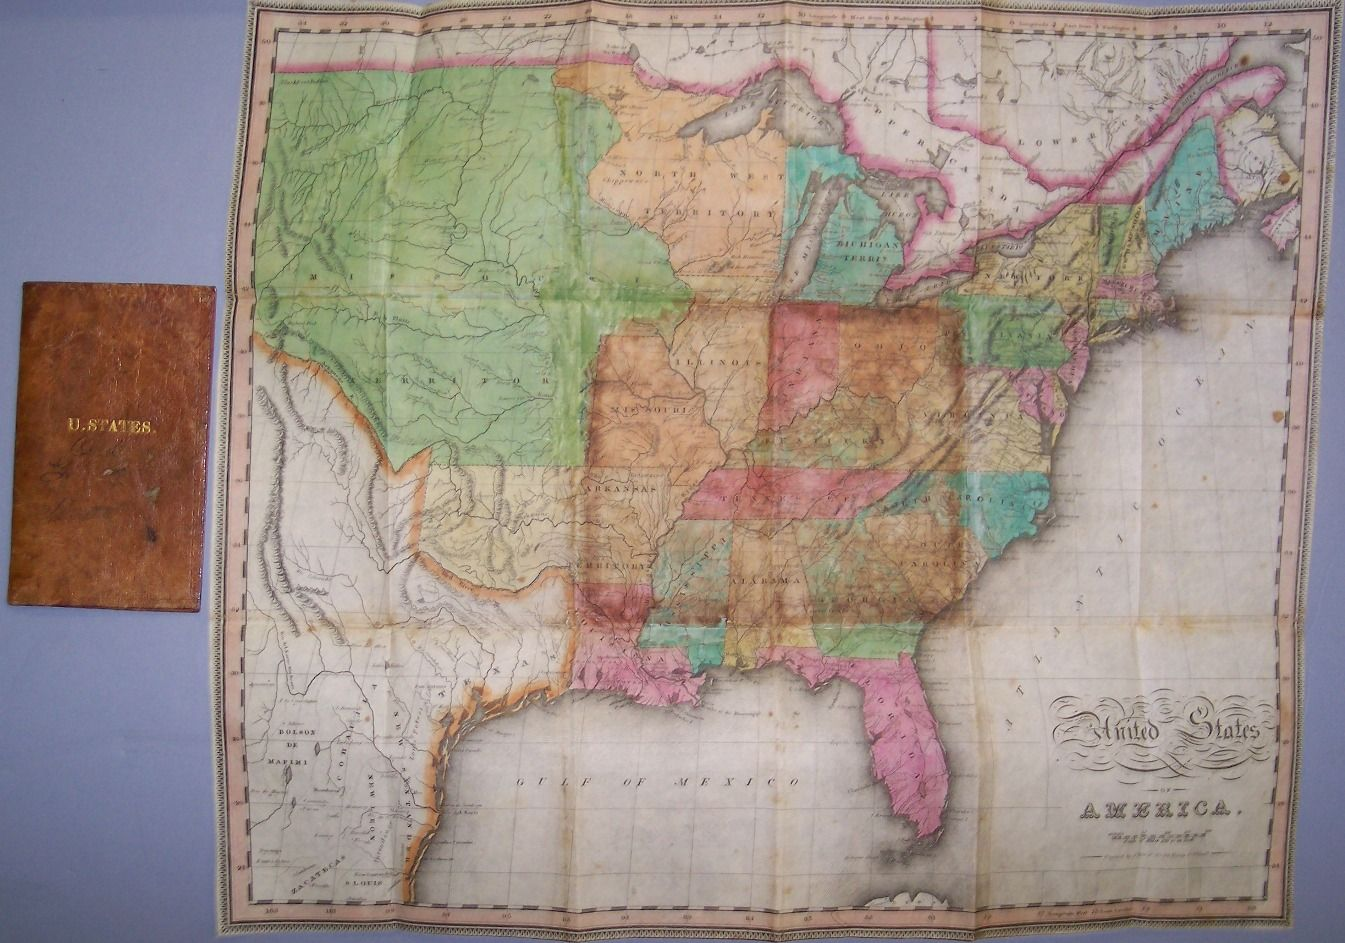 United States of America. Rare early 1820s Pocket Map of the ... on fort worth america map, fort wayne america map, albuquerque america map, dc america map, baltimore america map, lima america map, pennsylvania america map, kansas city america map, vincennes america map, albany america map, boise america map, pittsburgh america map, nebraska america map, massachusetts america map, akron america map, birmingham america map, quebec city america map, newport america map, big america map, tulsa america map,